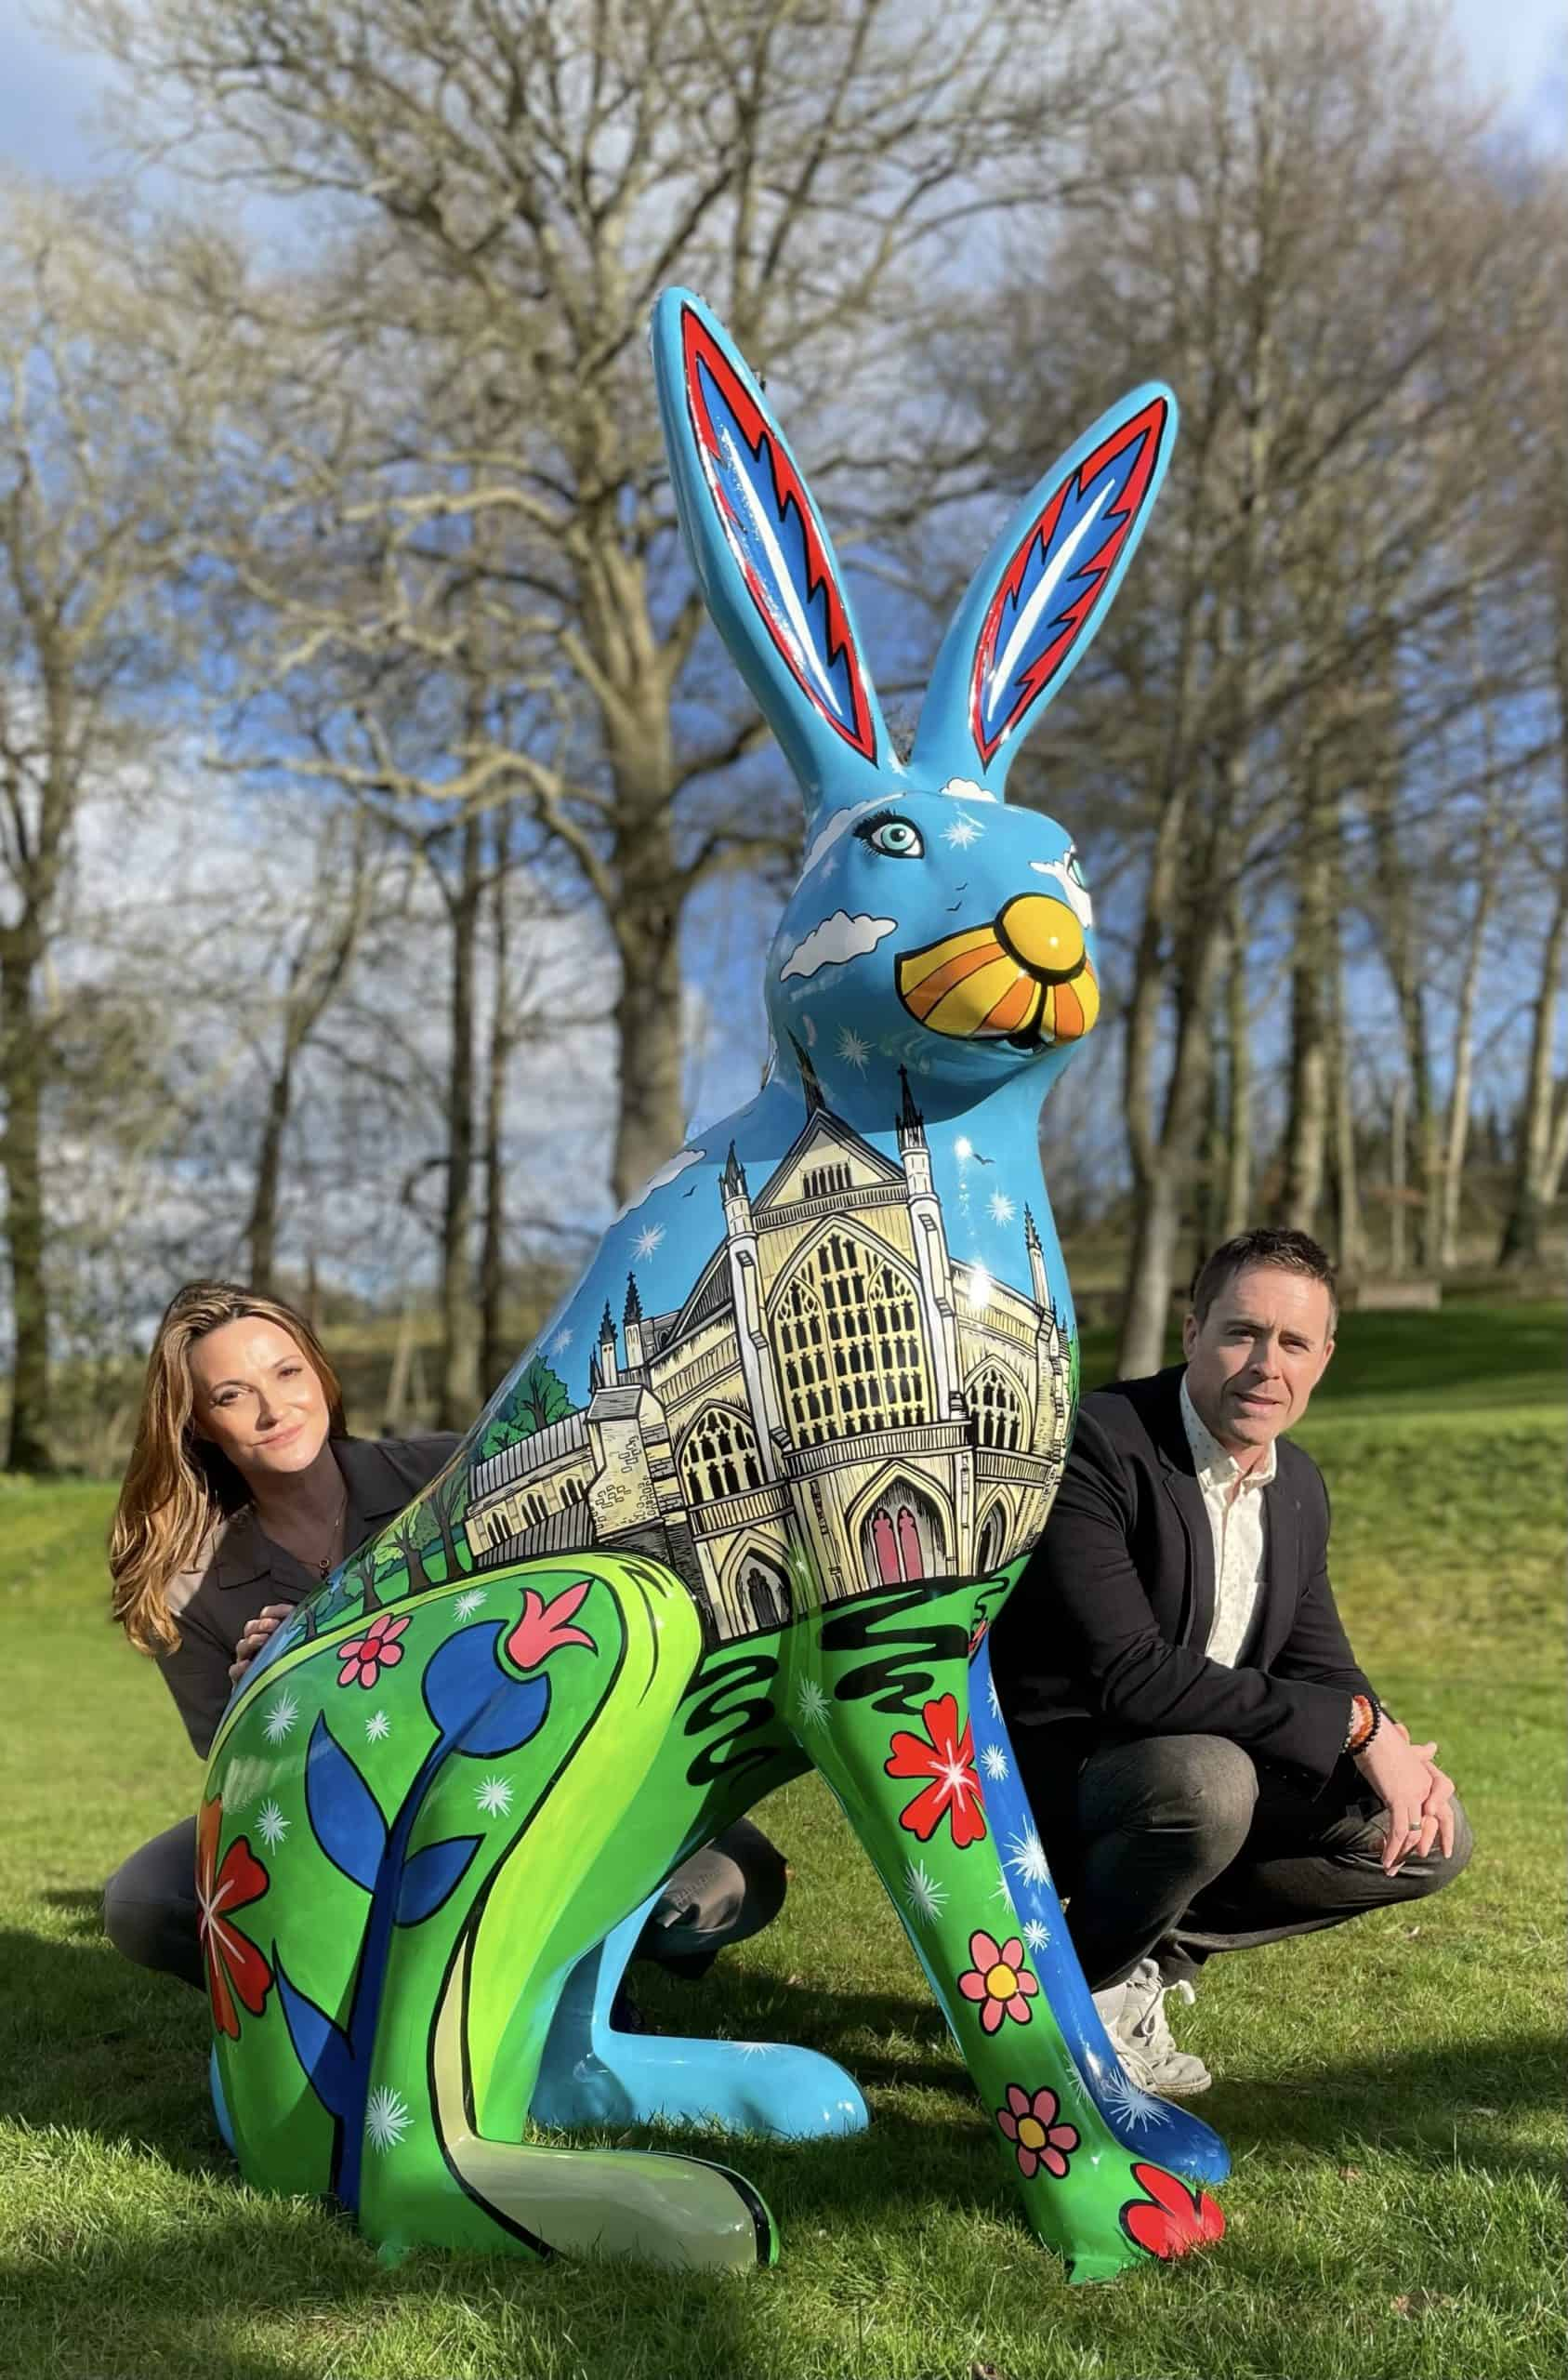 Sarah Parish and James Murray from The Murray Parish Trust pictured with a painted Hare Sculpture by artist Jenny Leornard showing images of historic Winchester